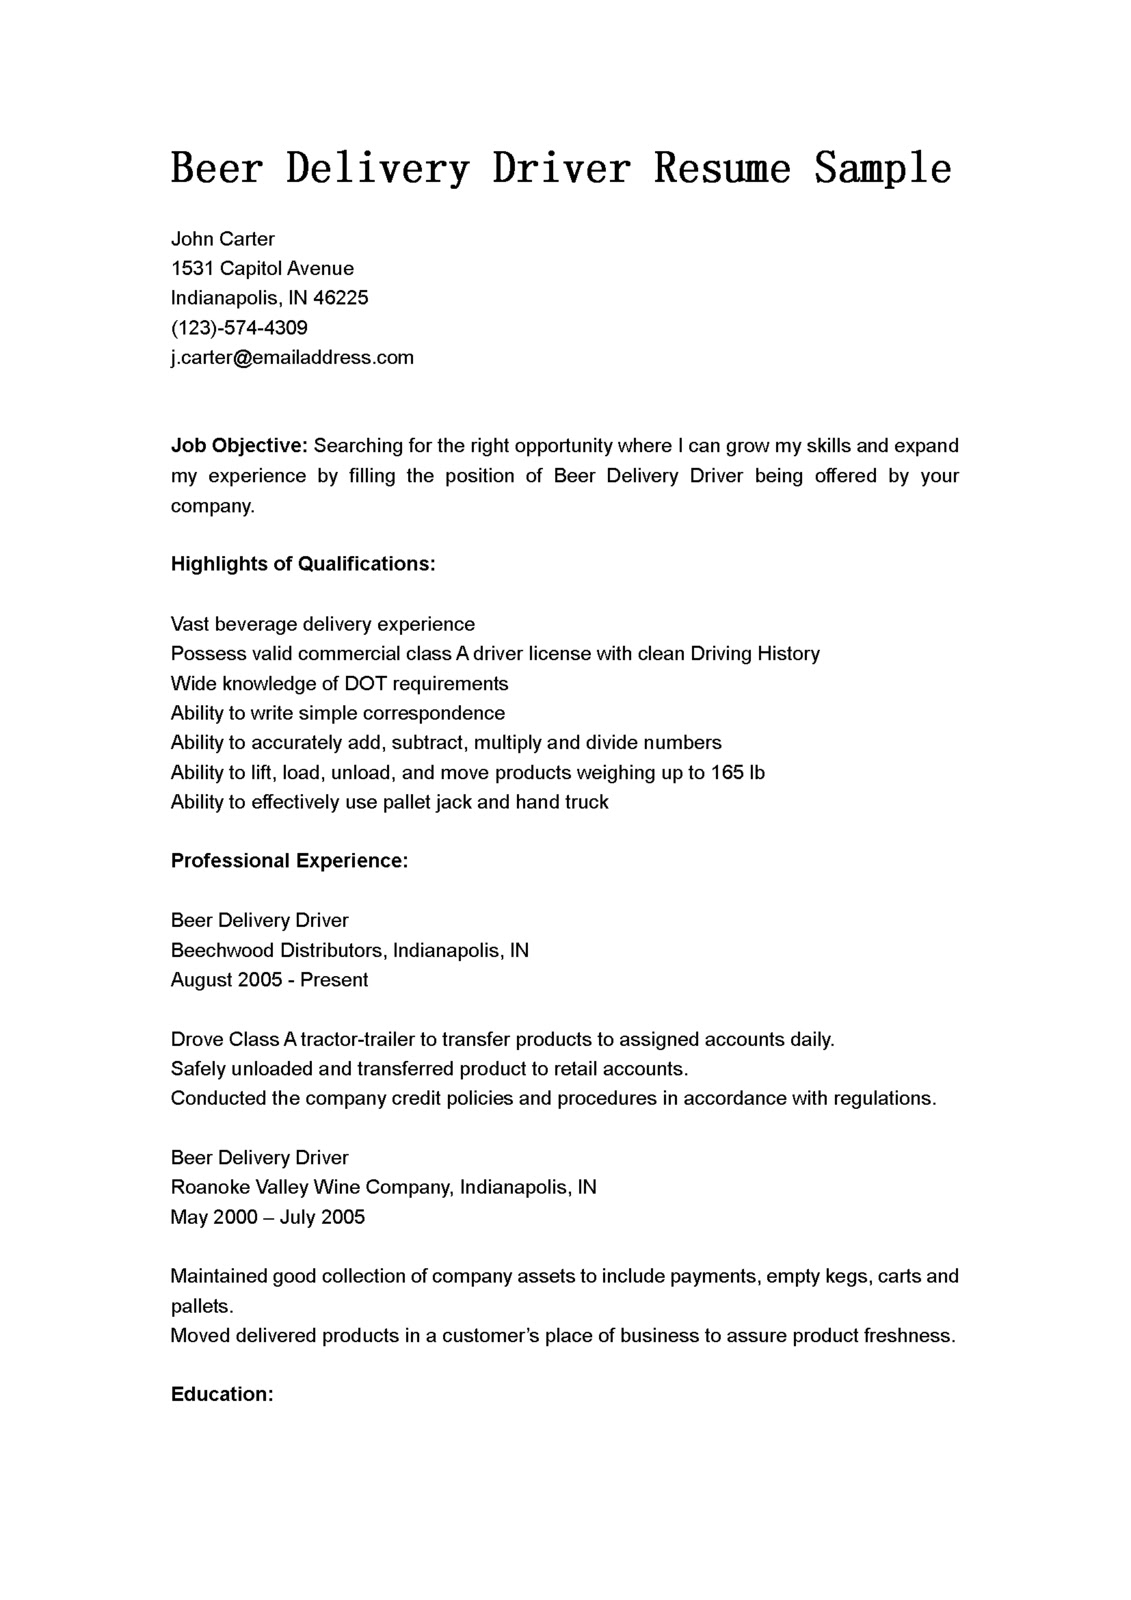 driver resumes  delivery driver resume sample beer